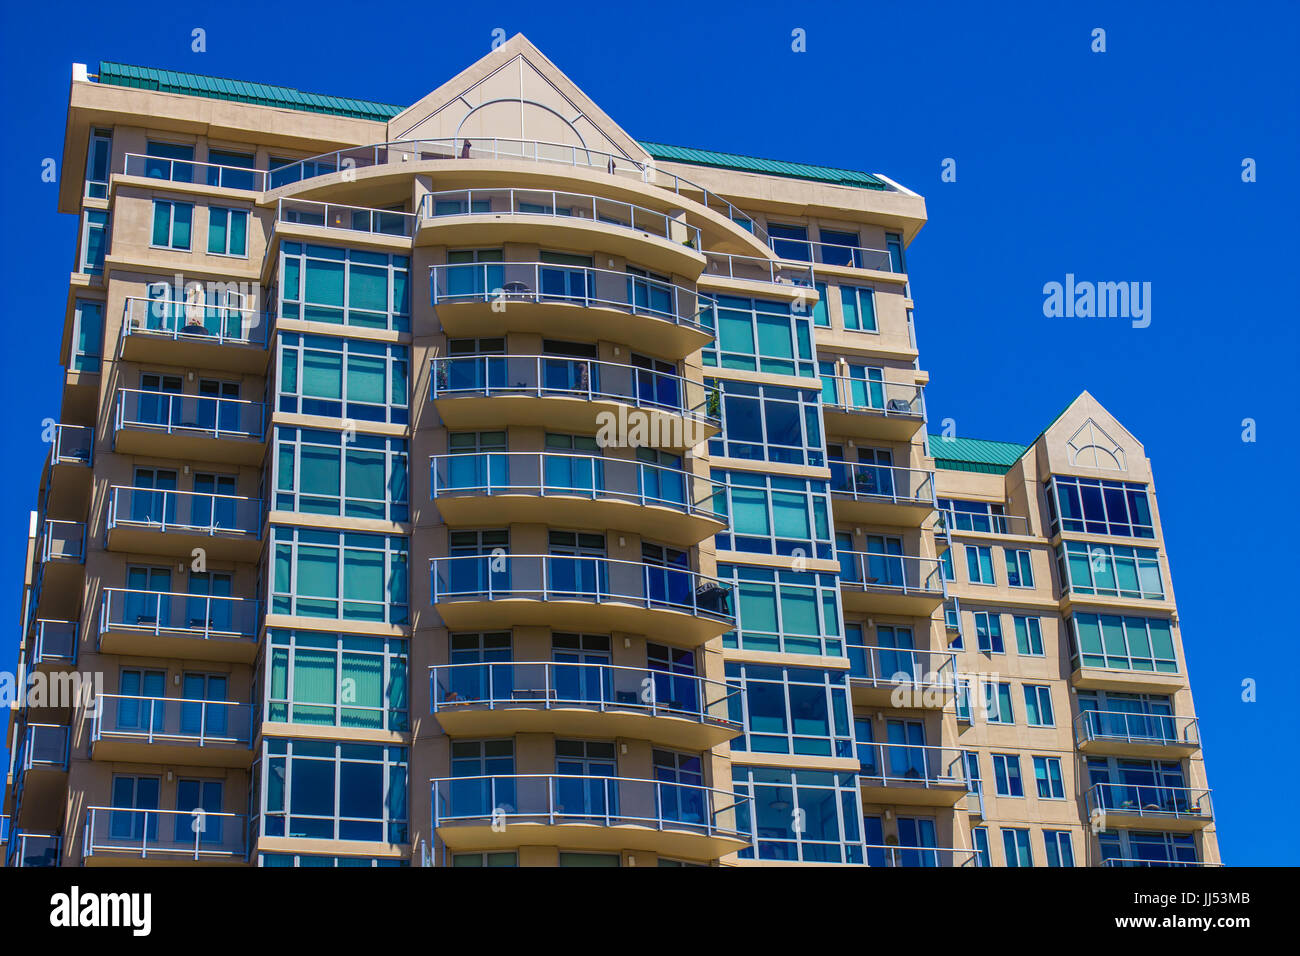 Large Multi Story Building With Balconies - Stock Image